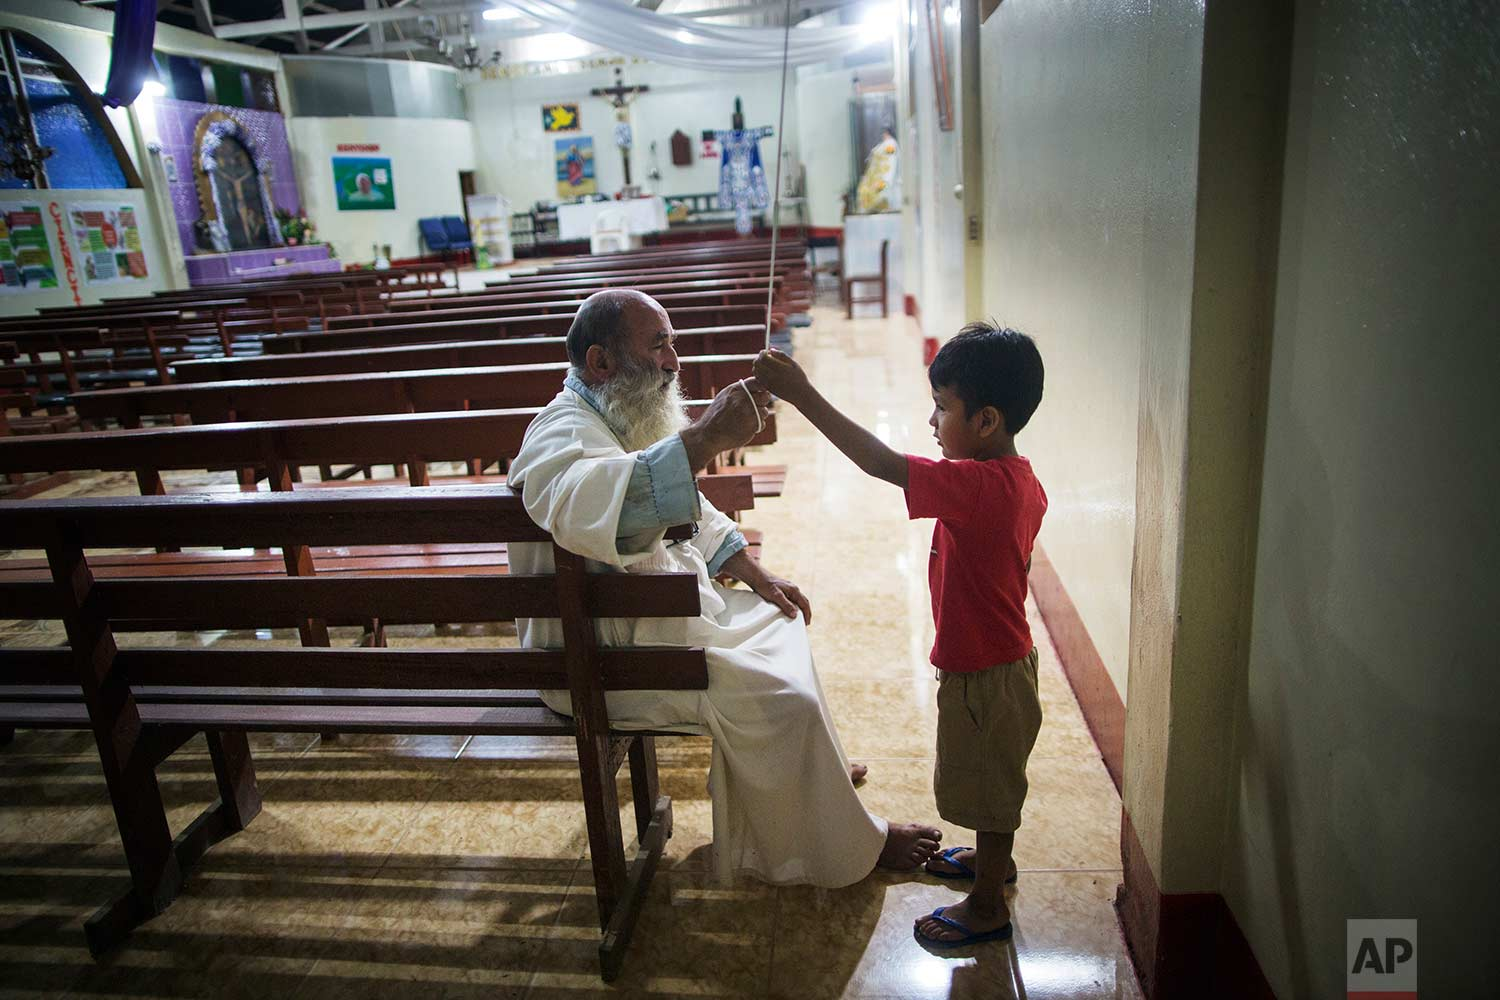 In this Jan. 13, 2018 photo, Father Pablo Zabala, better known as Padre Pablo, explains to five-year-old Valentino Cahuata how to properly ring the church bell to call the faithful to Mass, in Boca Colorado, part of Peru's Madre de Dios region in the Amazon. (AP Photo/Rodrigo Abd) |  See these photos on AP Images